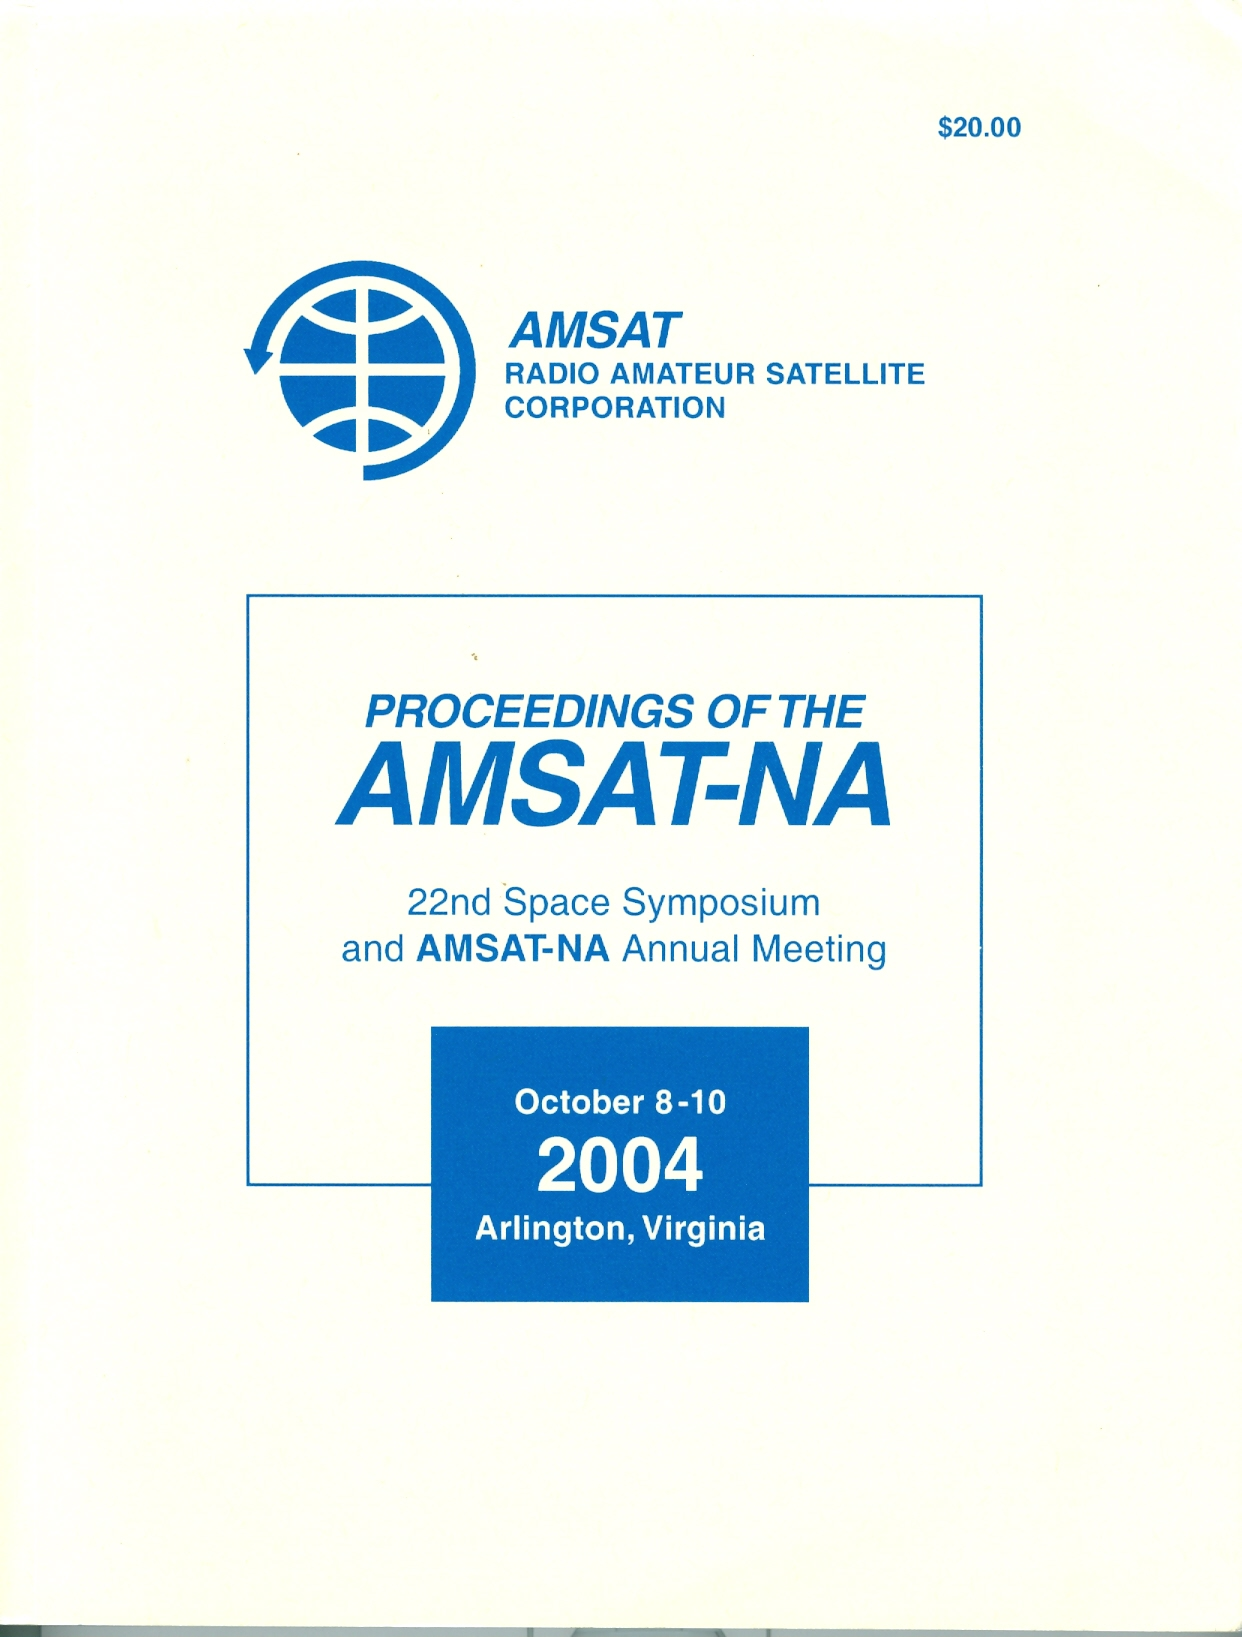 Proceedings of the AMSAT-NA 14th Space Symposium and AMSAT Annual Meeting